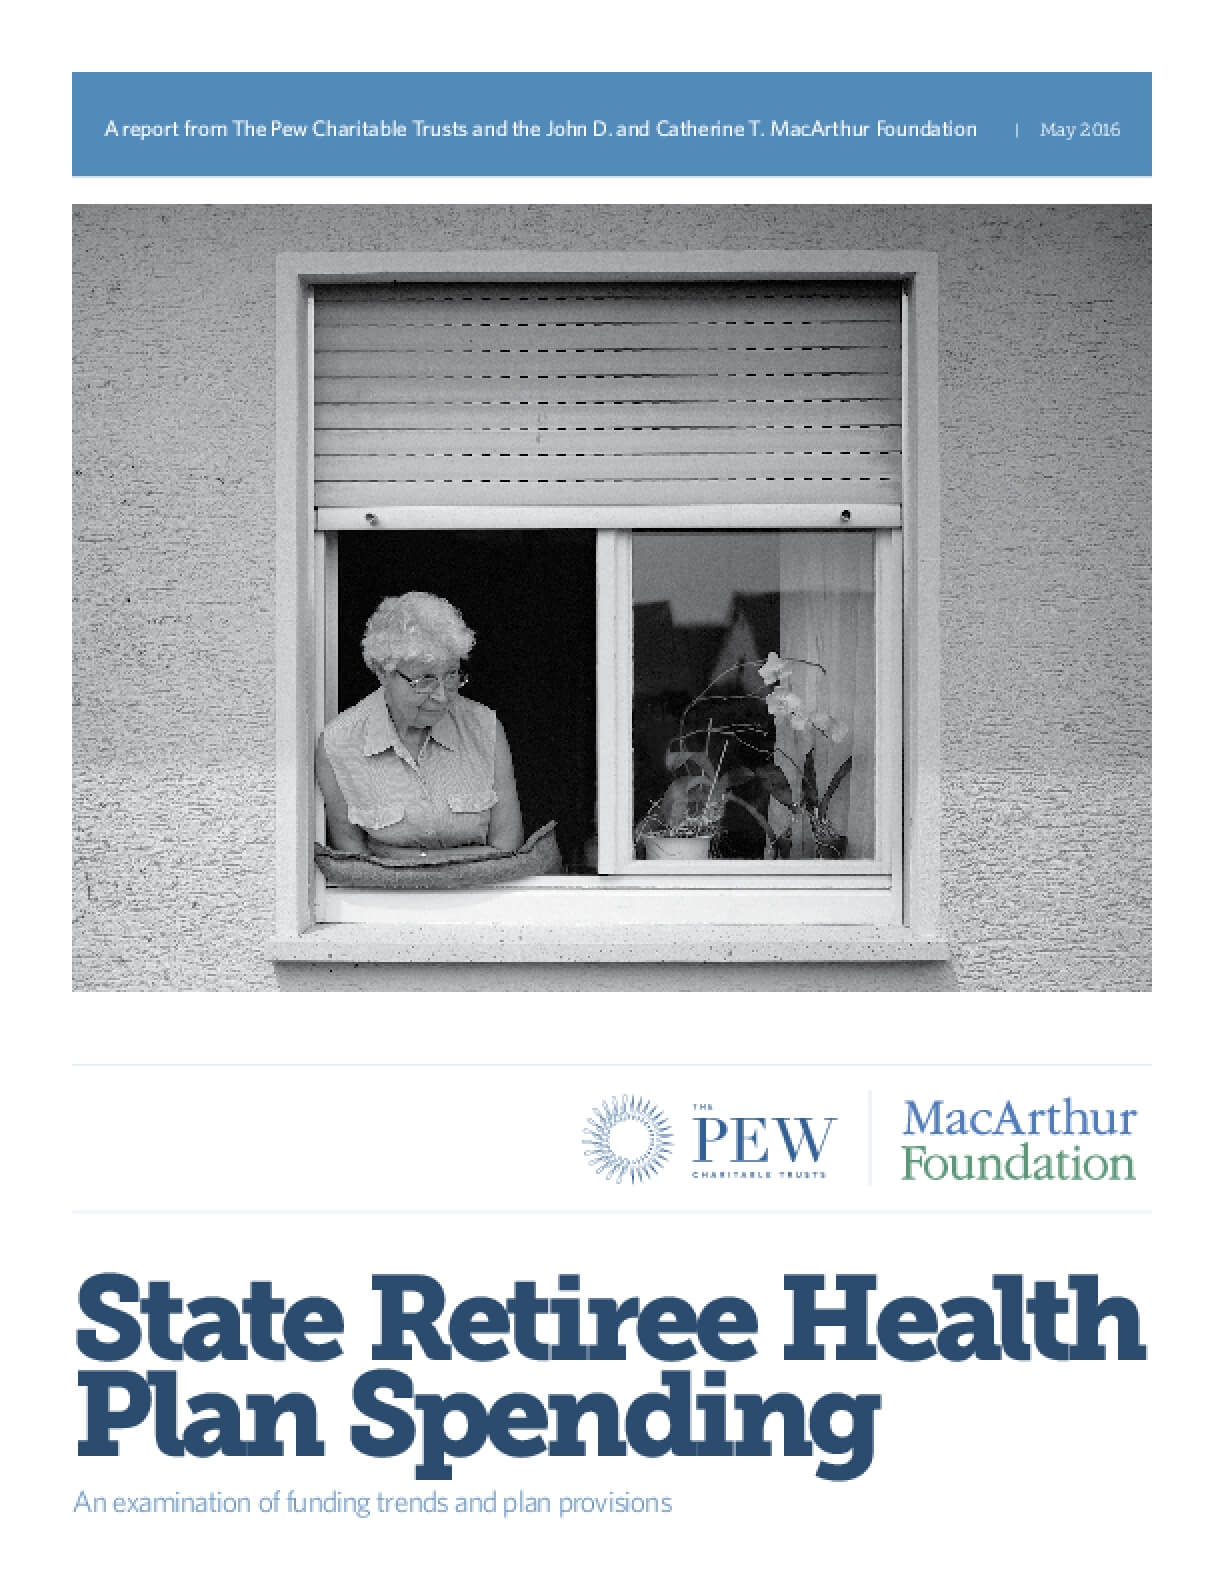 State Retiree Health Plan Spending: An Examination of Funding Trends and Plan Provisions